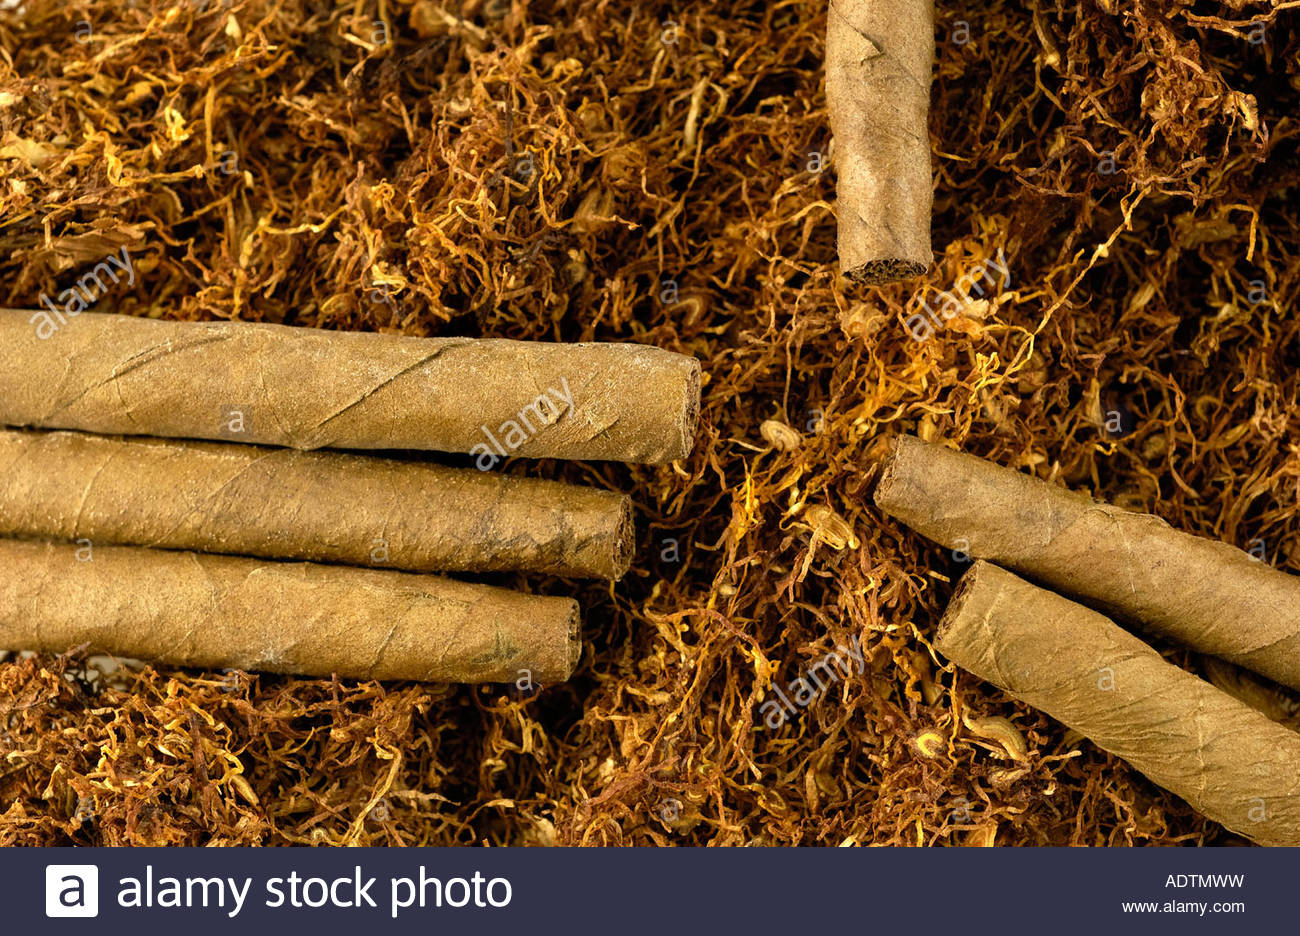 Tobacco; cigarillos and tobacco leaves, France - Stock Image